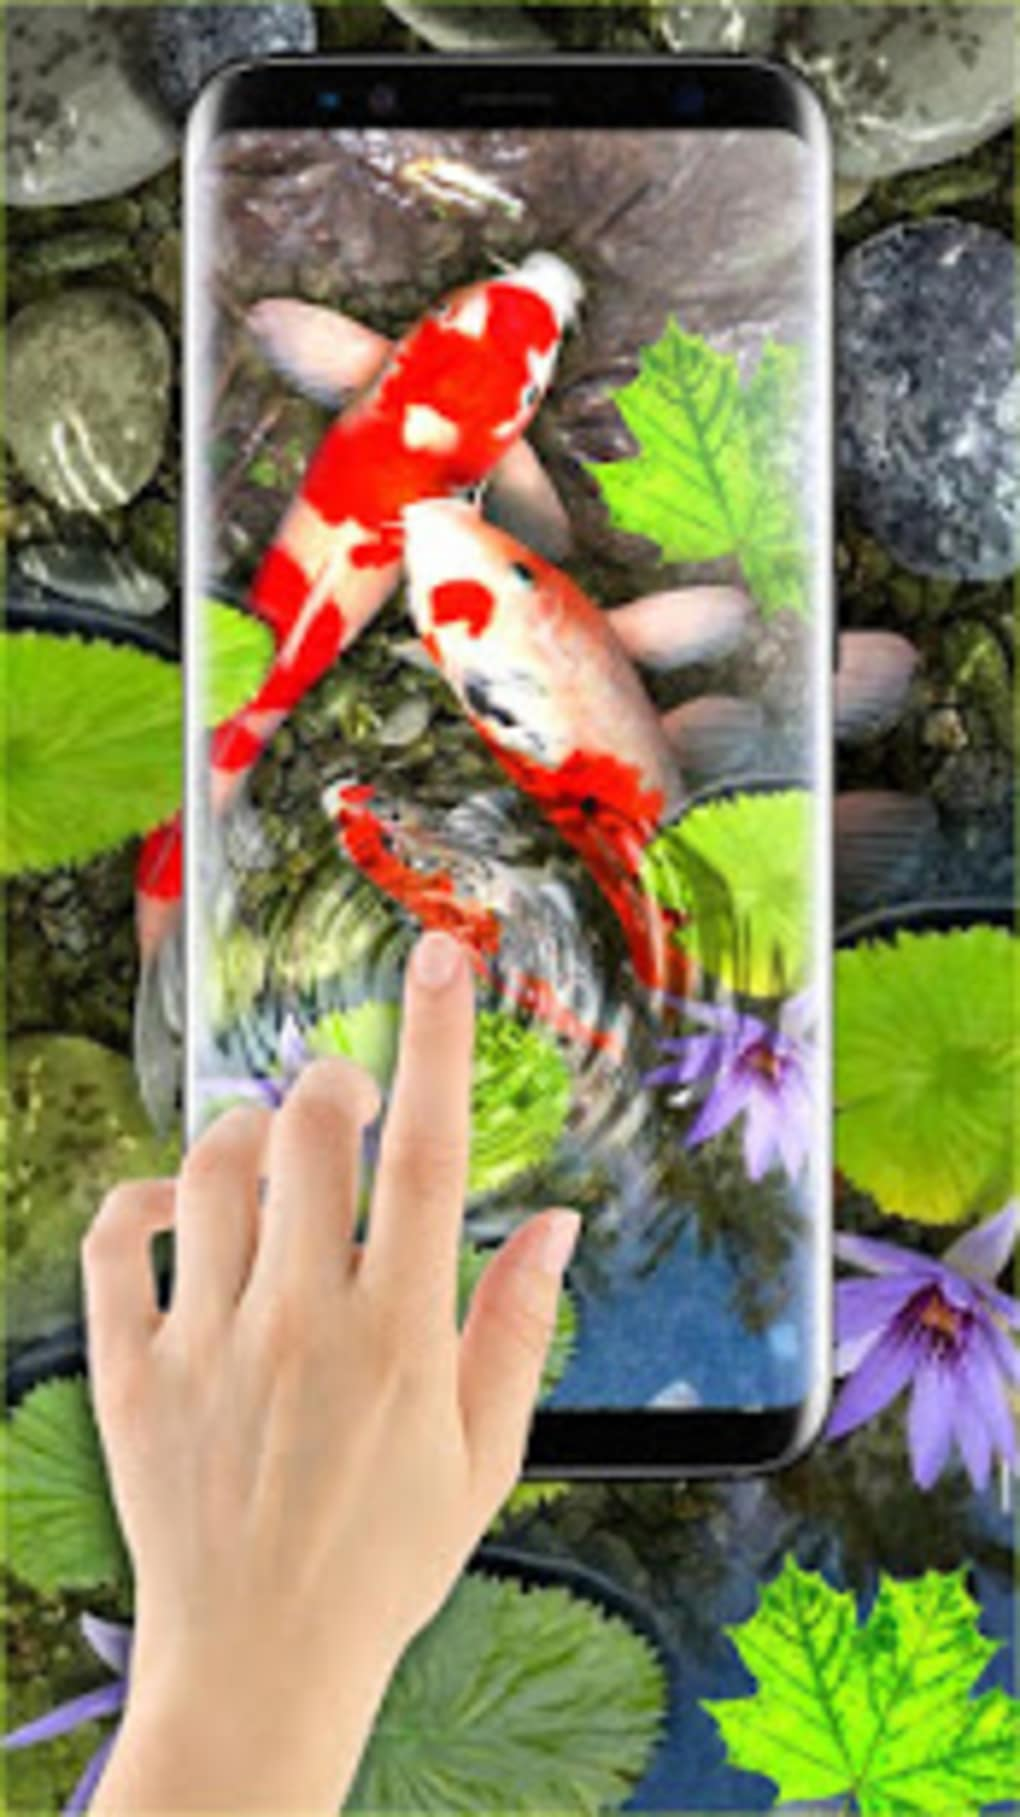 3d koi fish wallpaper hd 3d fish live wallpapers for - 3d koi pond live wallpaper iphone ...